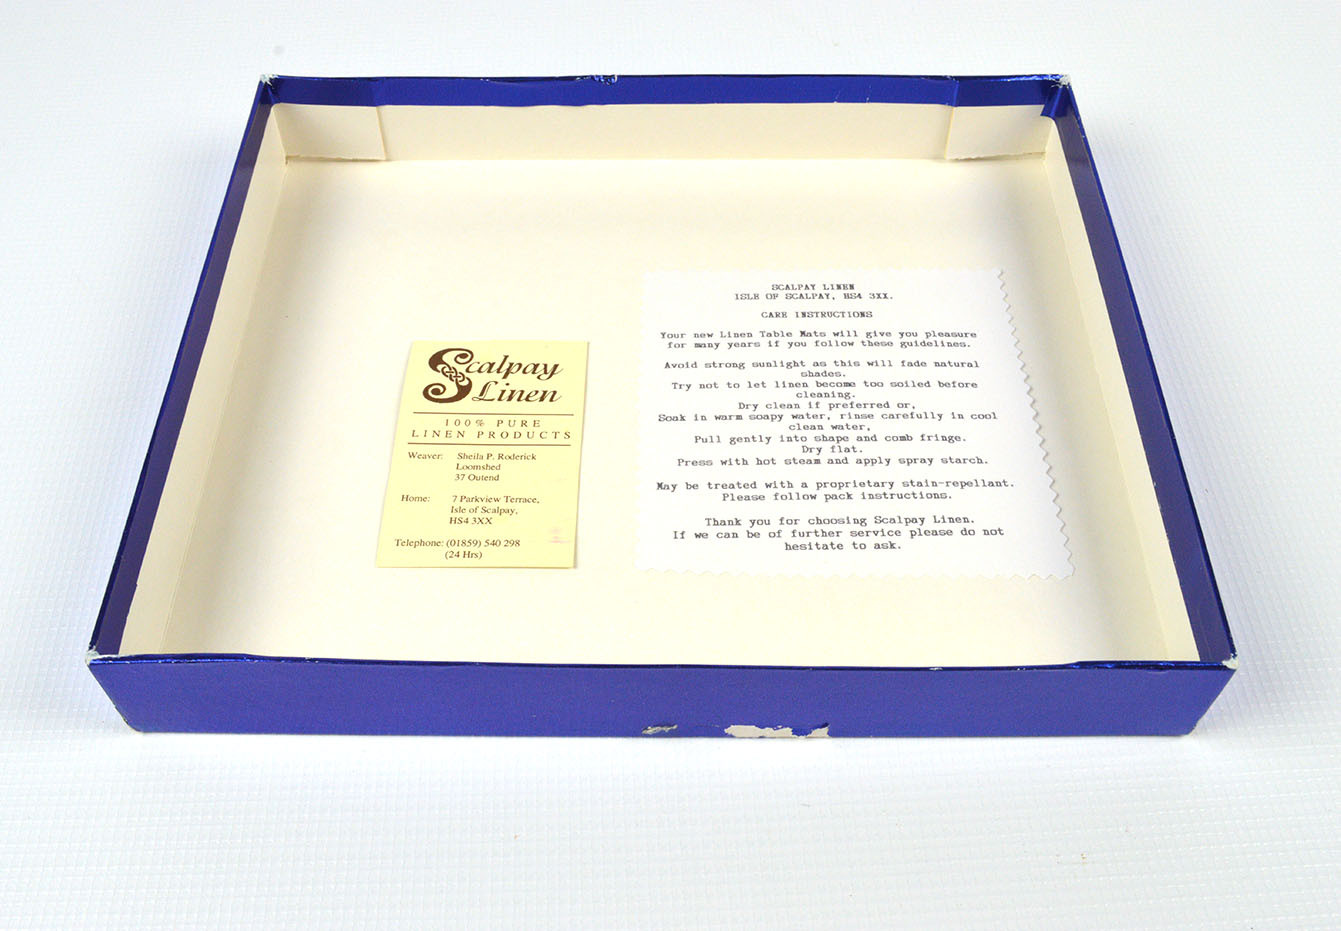 Scalpay Linen Box